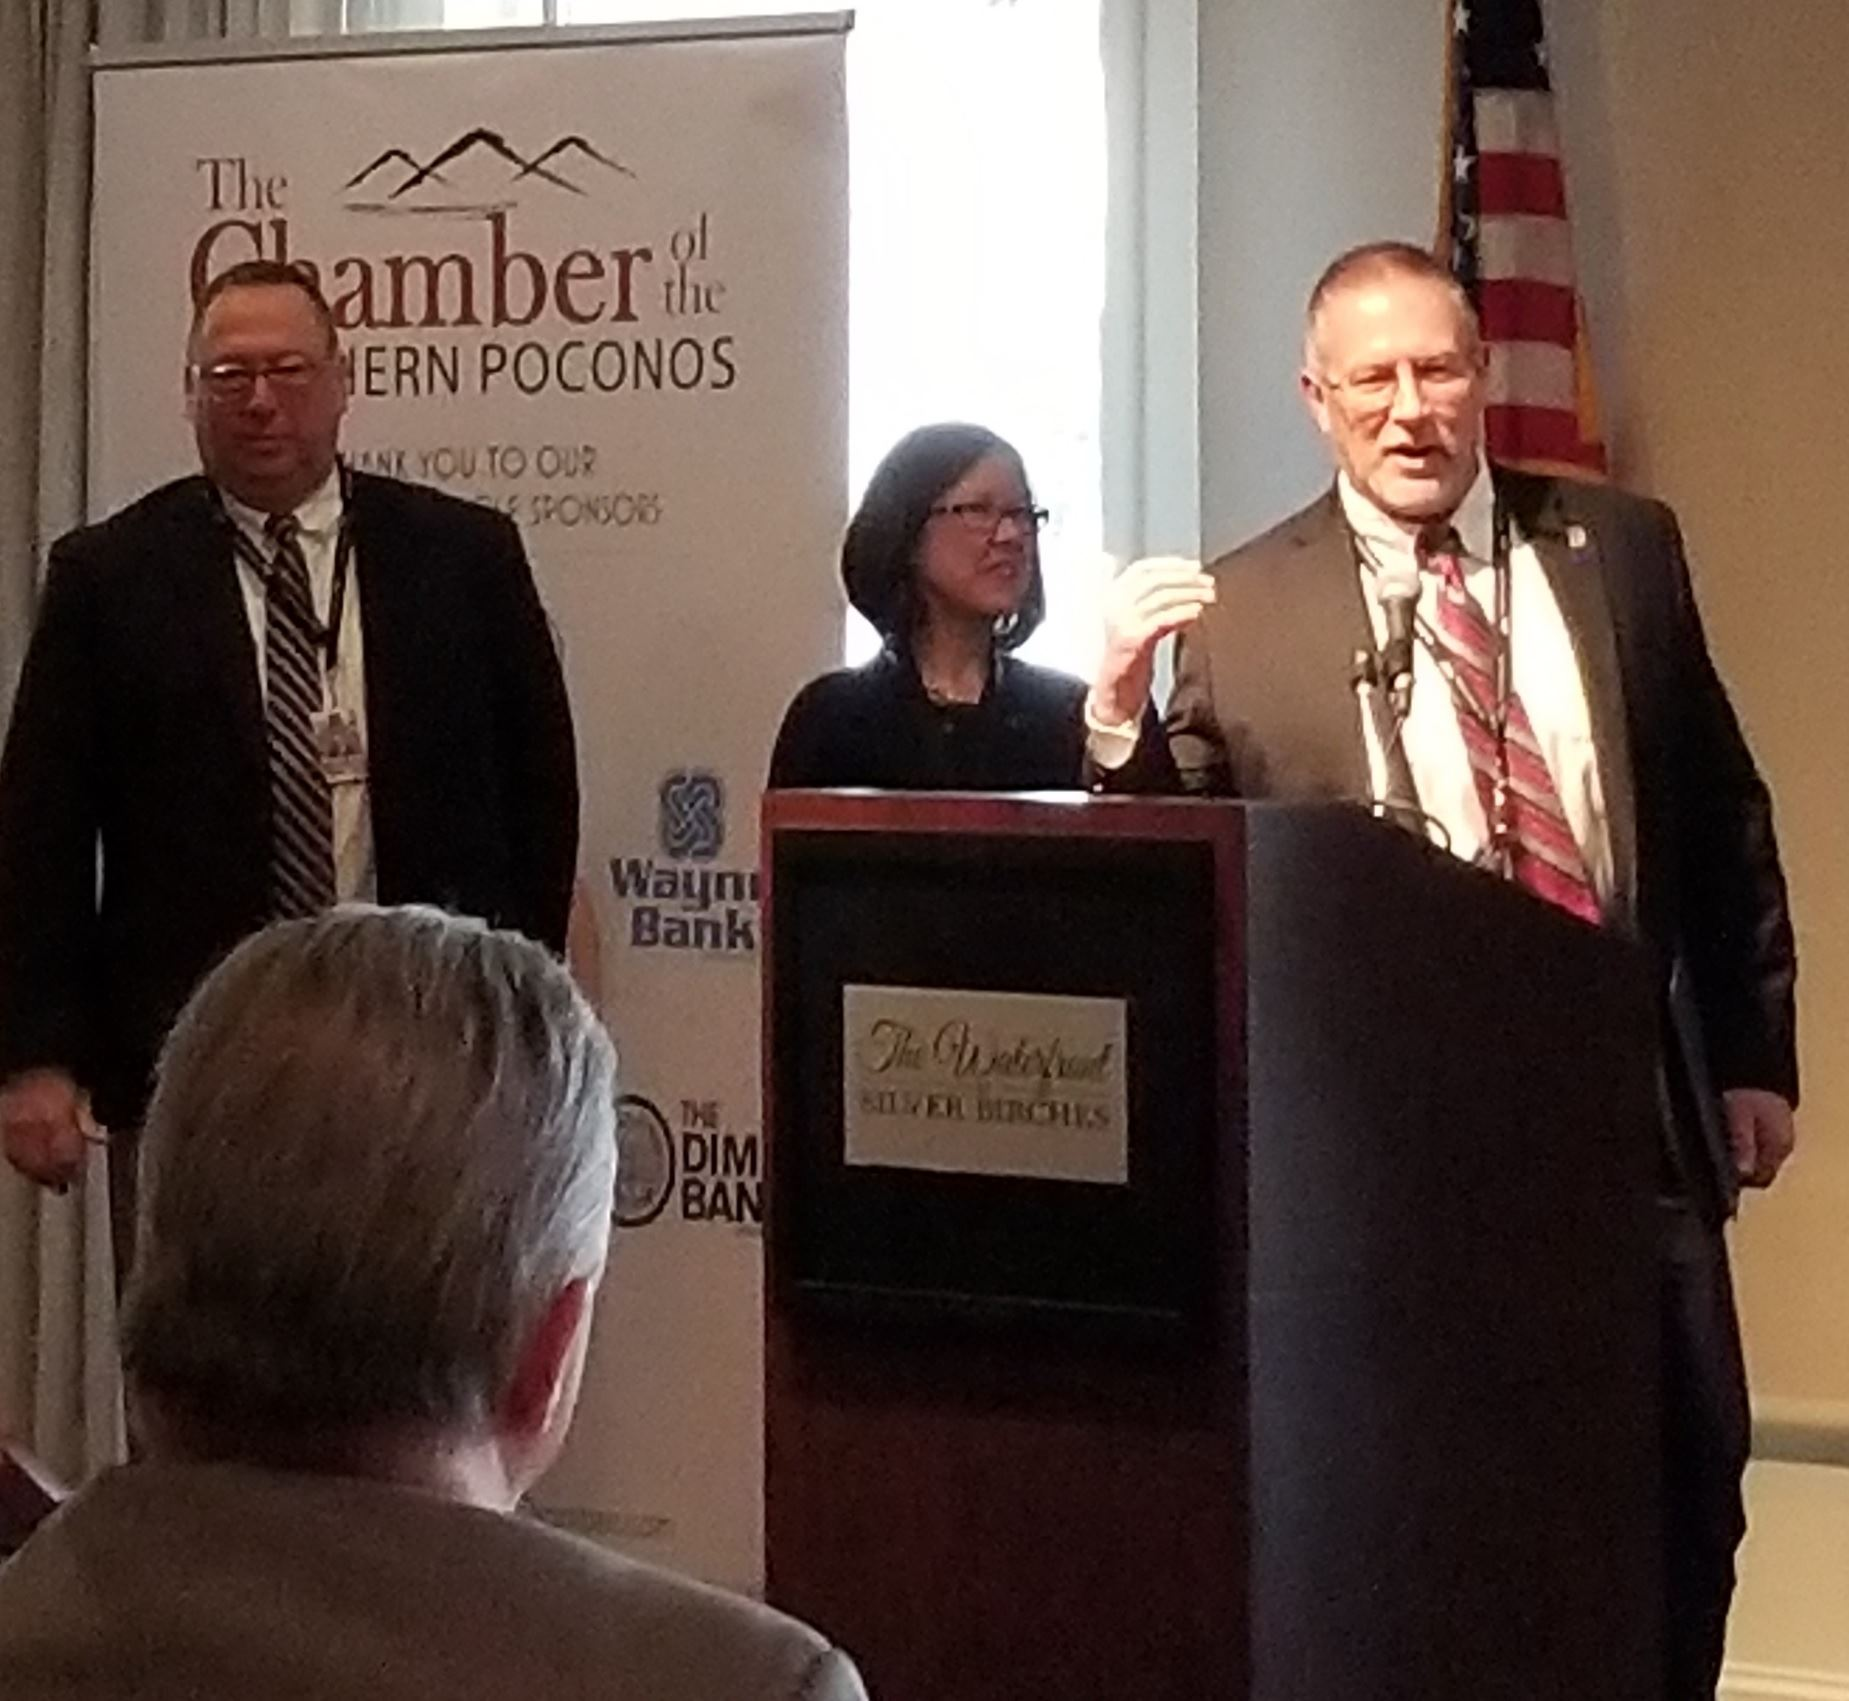 Wayne County Commissioners Joseph Adams, Jocelyn Cramer and Brian Smith speaking to the Chamber of t